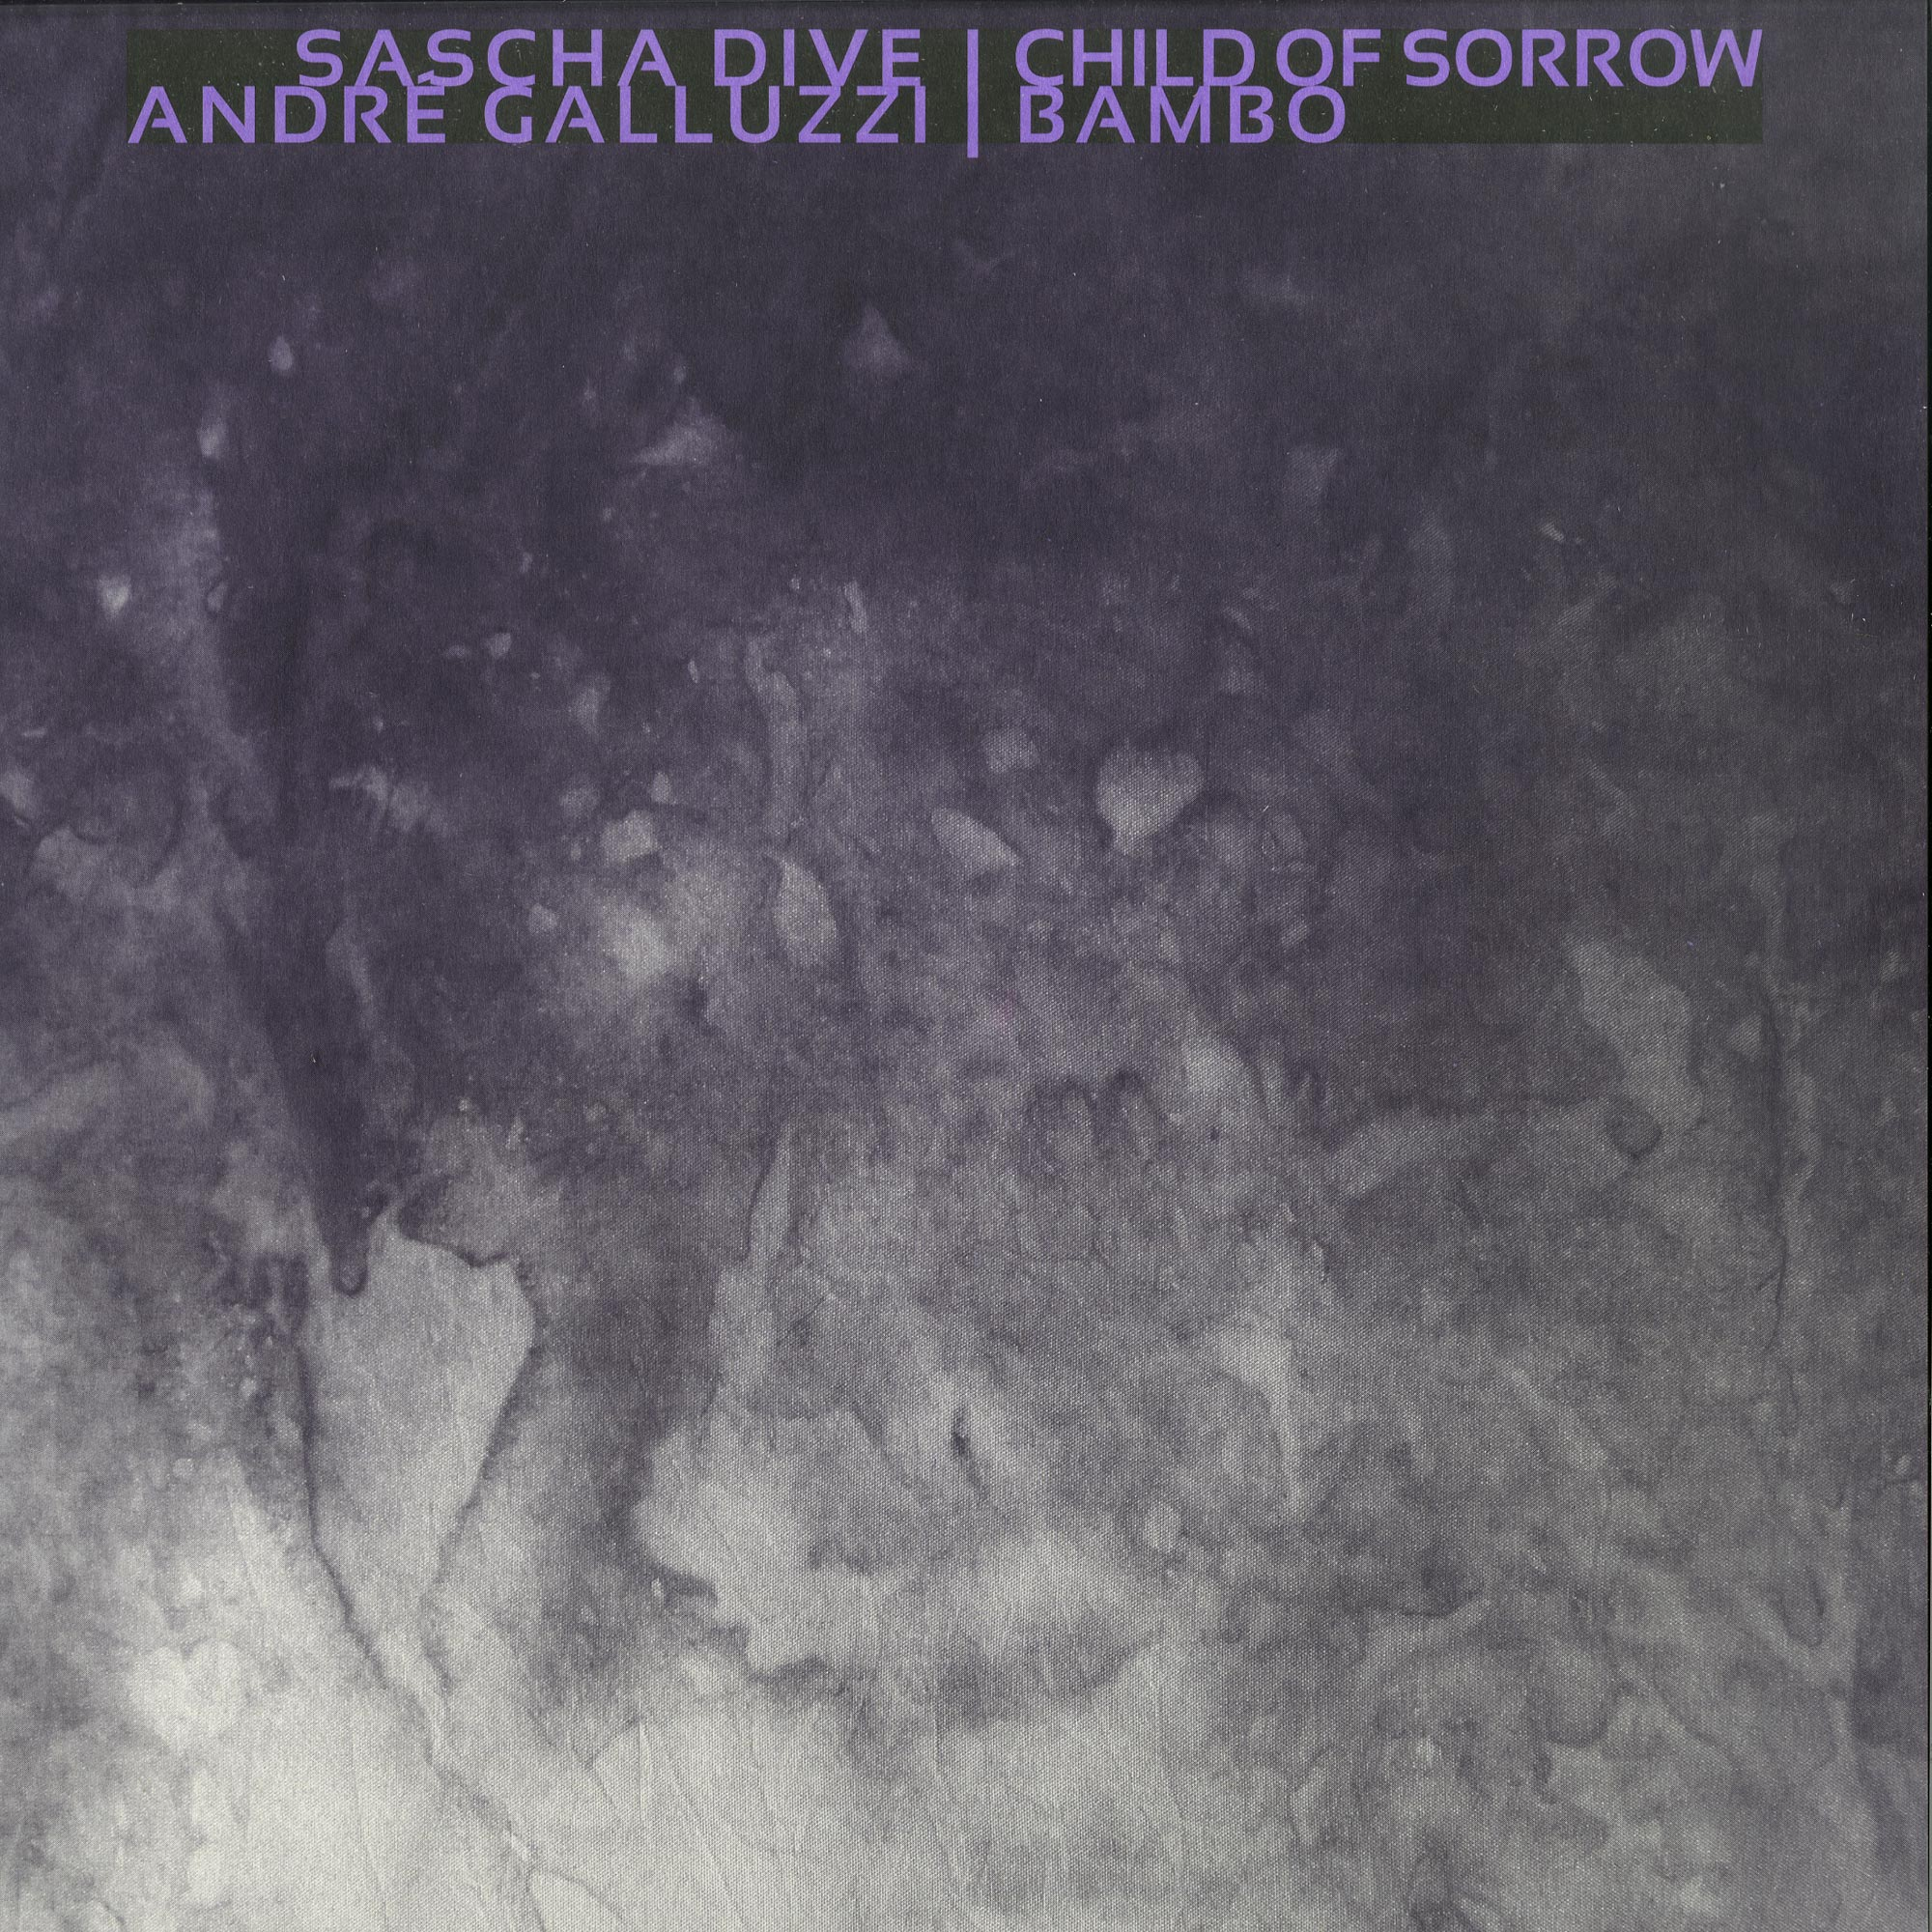 Sascha Dive / Andre Galluzzi - CHILD OF SORROW / BAMBO